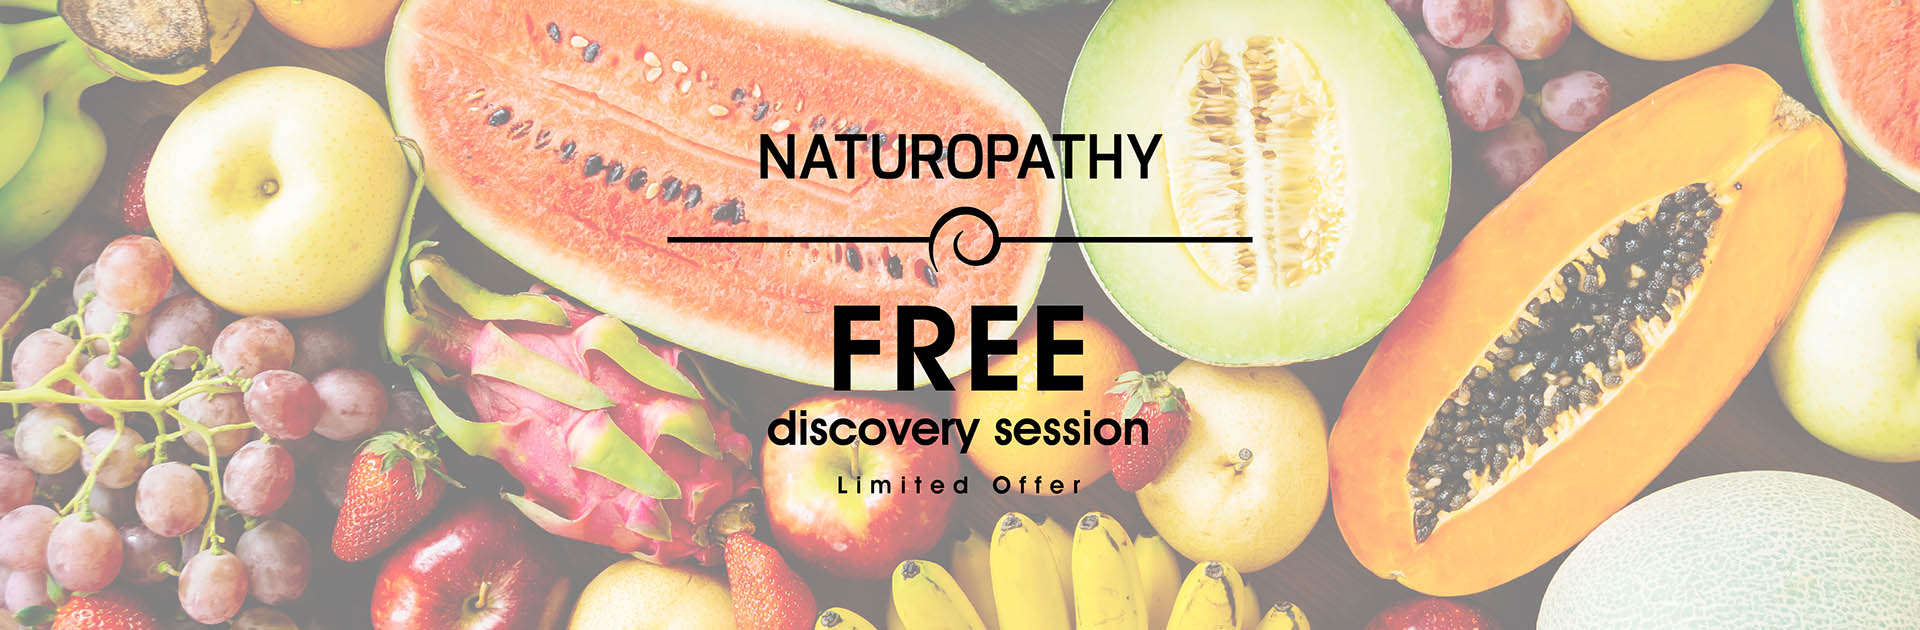 Naturopathy Special Offer